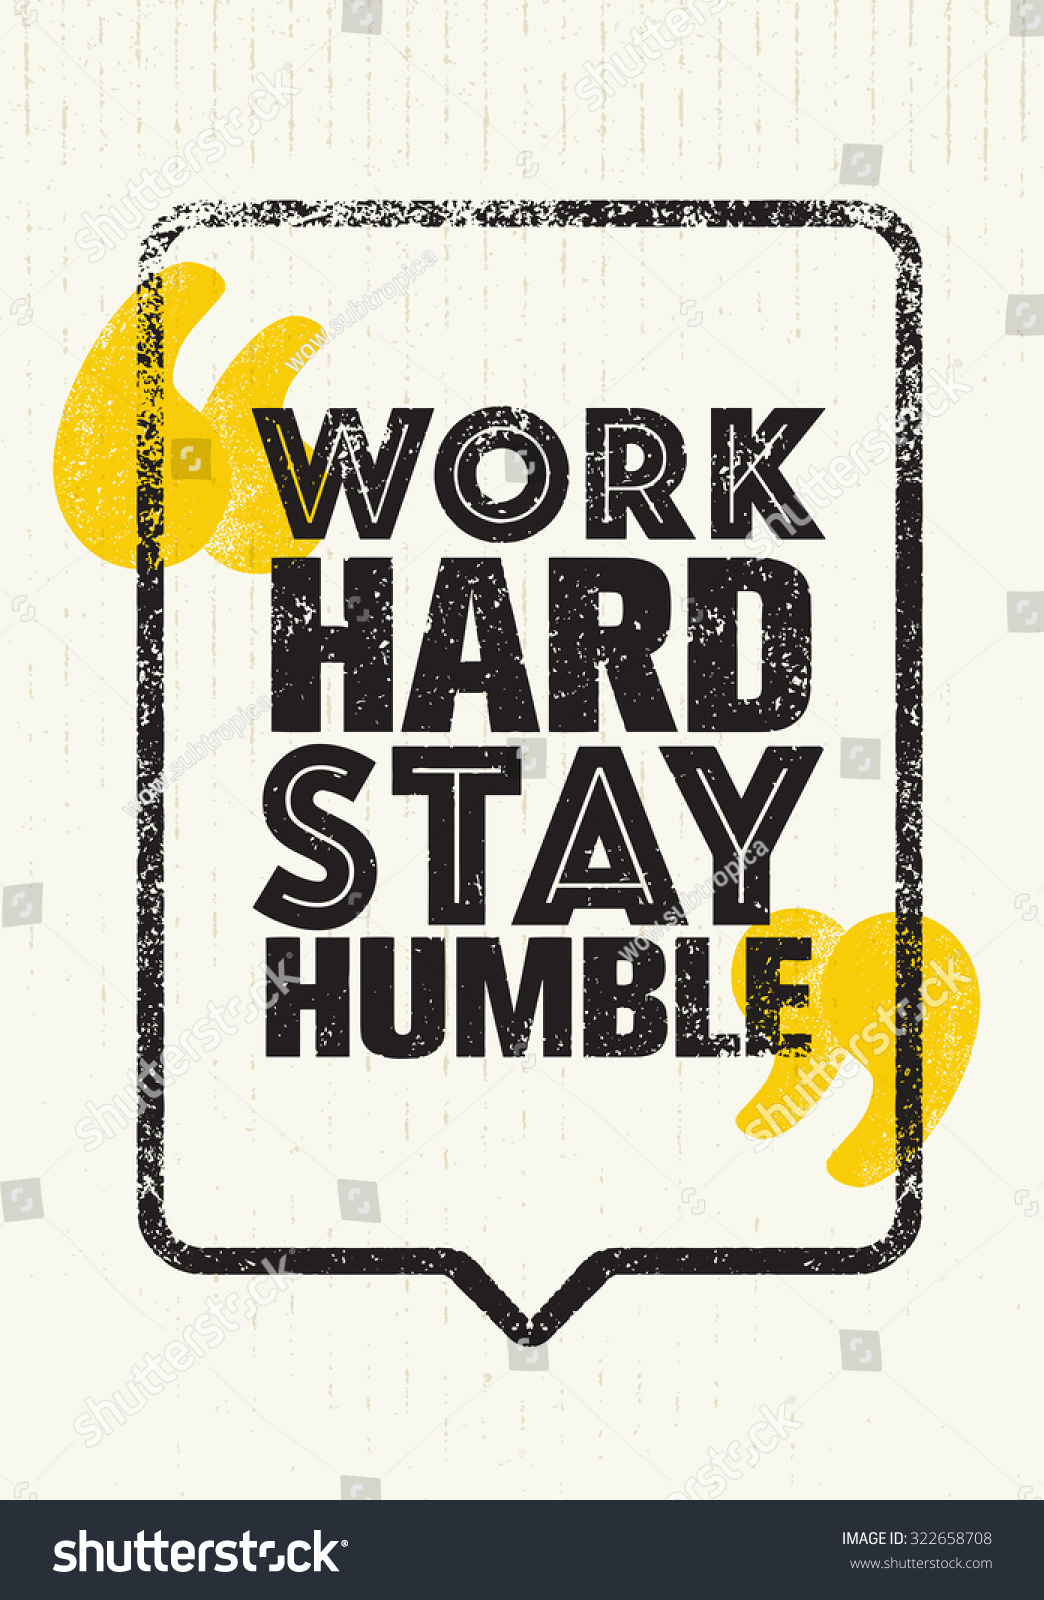 Work Hard Stay Humble.Inspiring Creative Motivation Quote Vector Typography Banner Design Concept On Cardboard Background